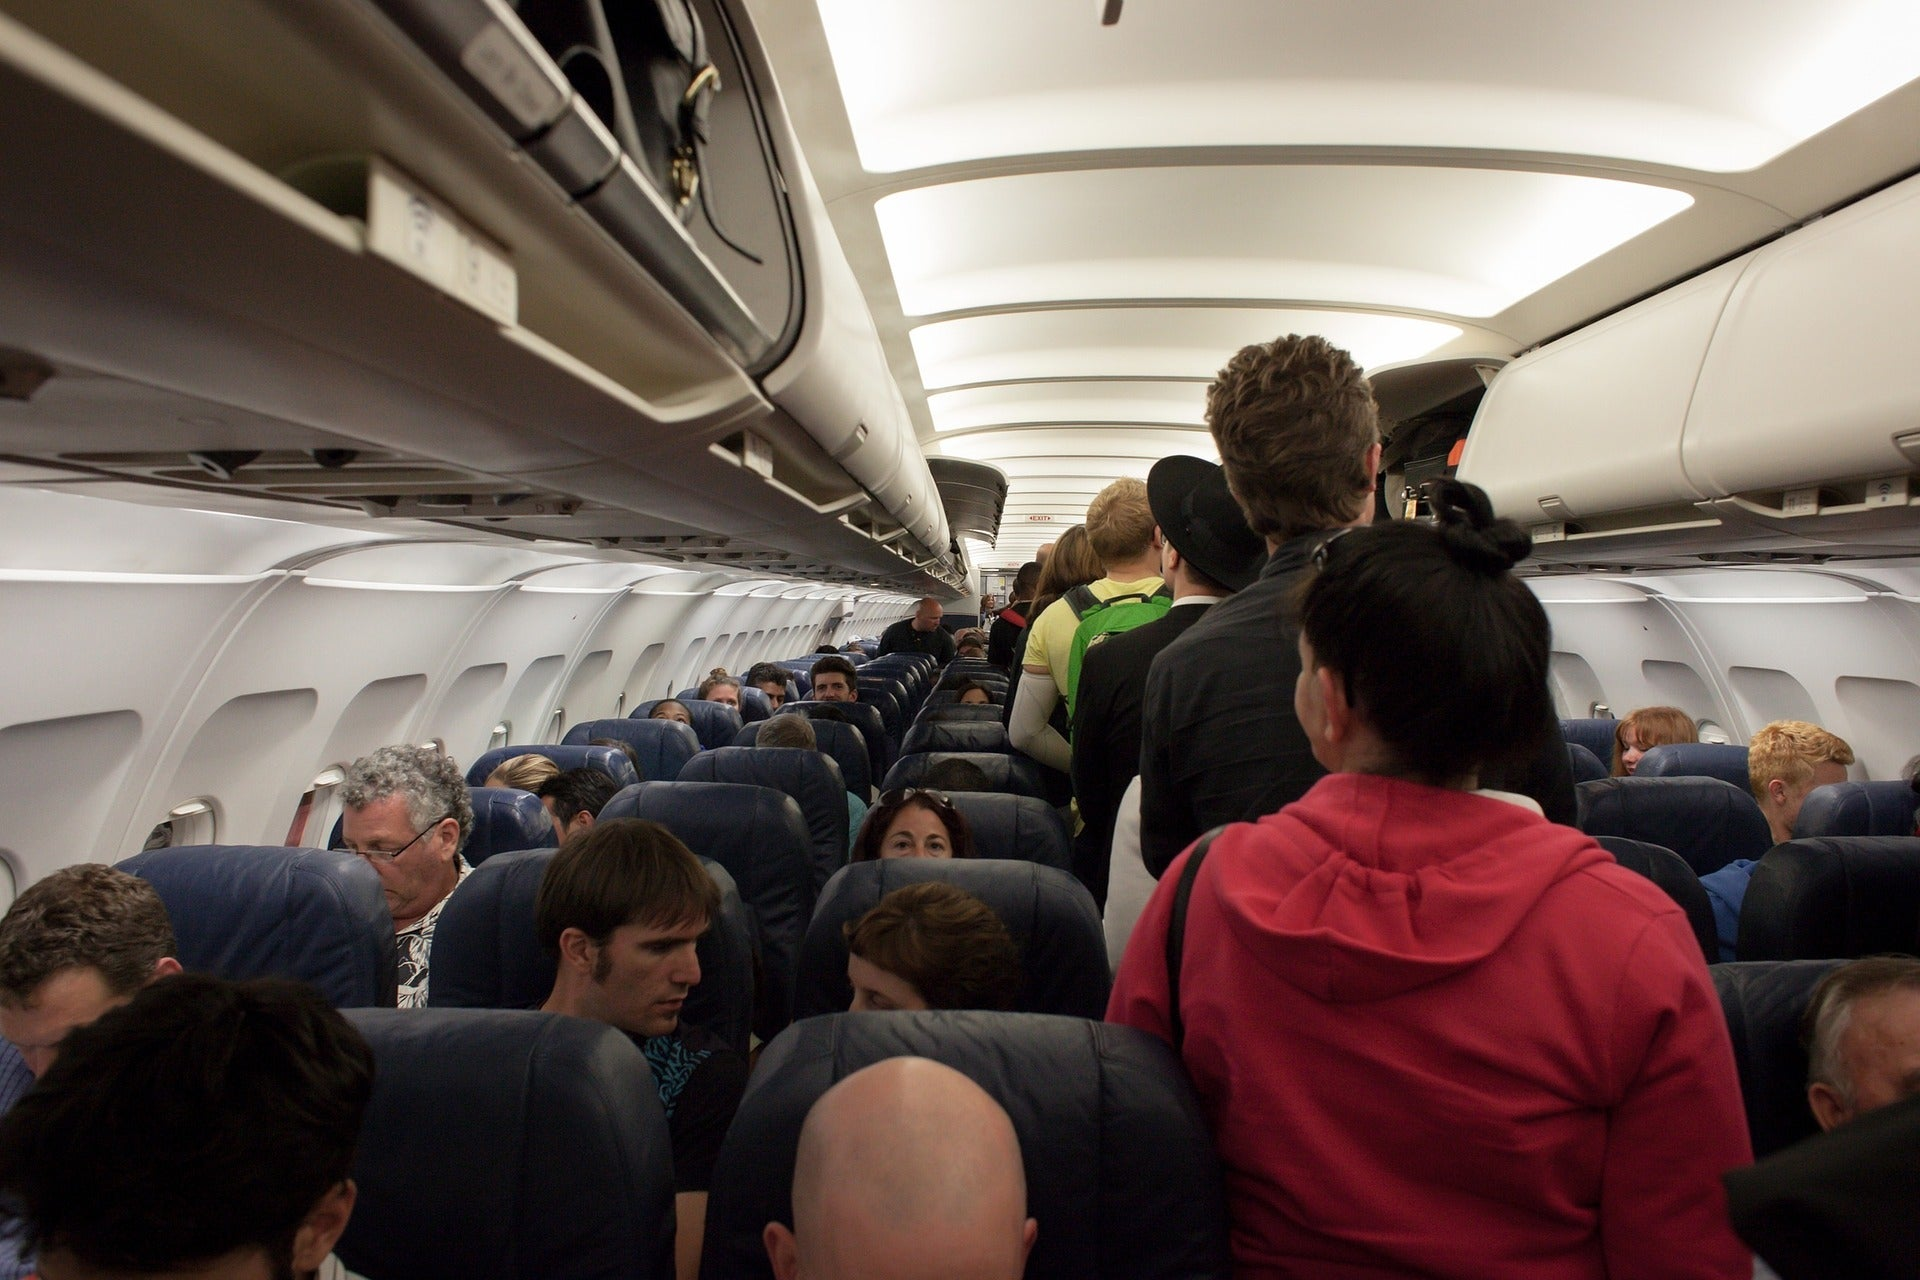 How to prevent blood clots as airlines squeeze you into tighter spaces